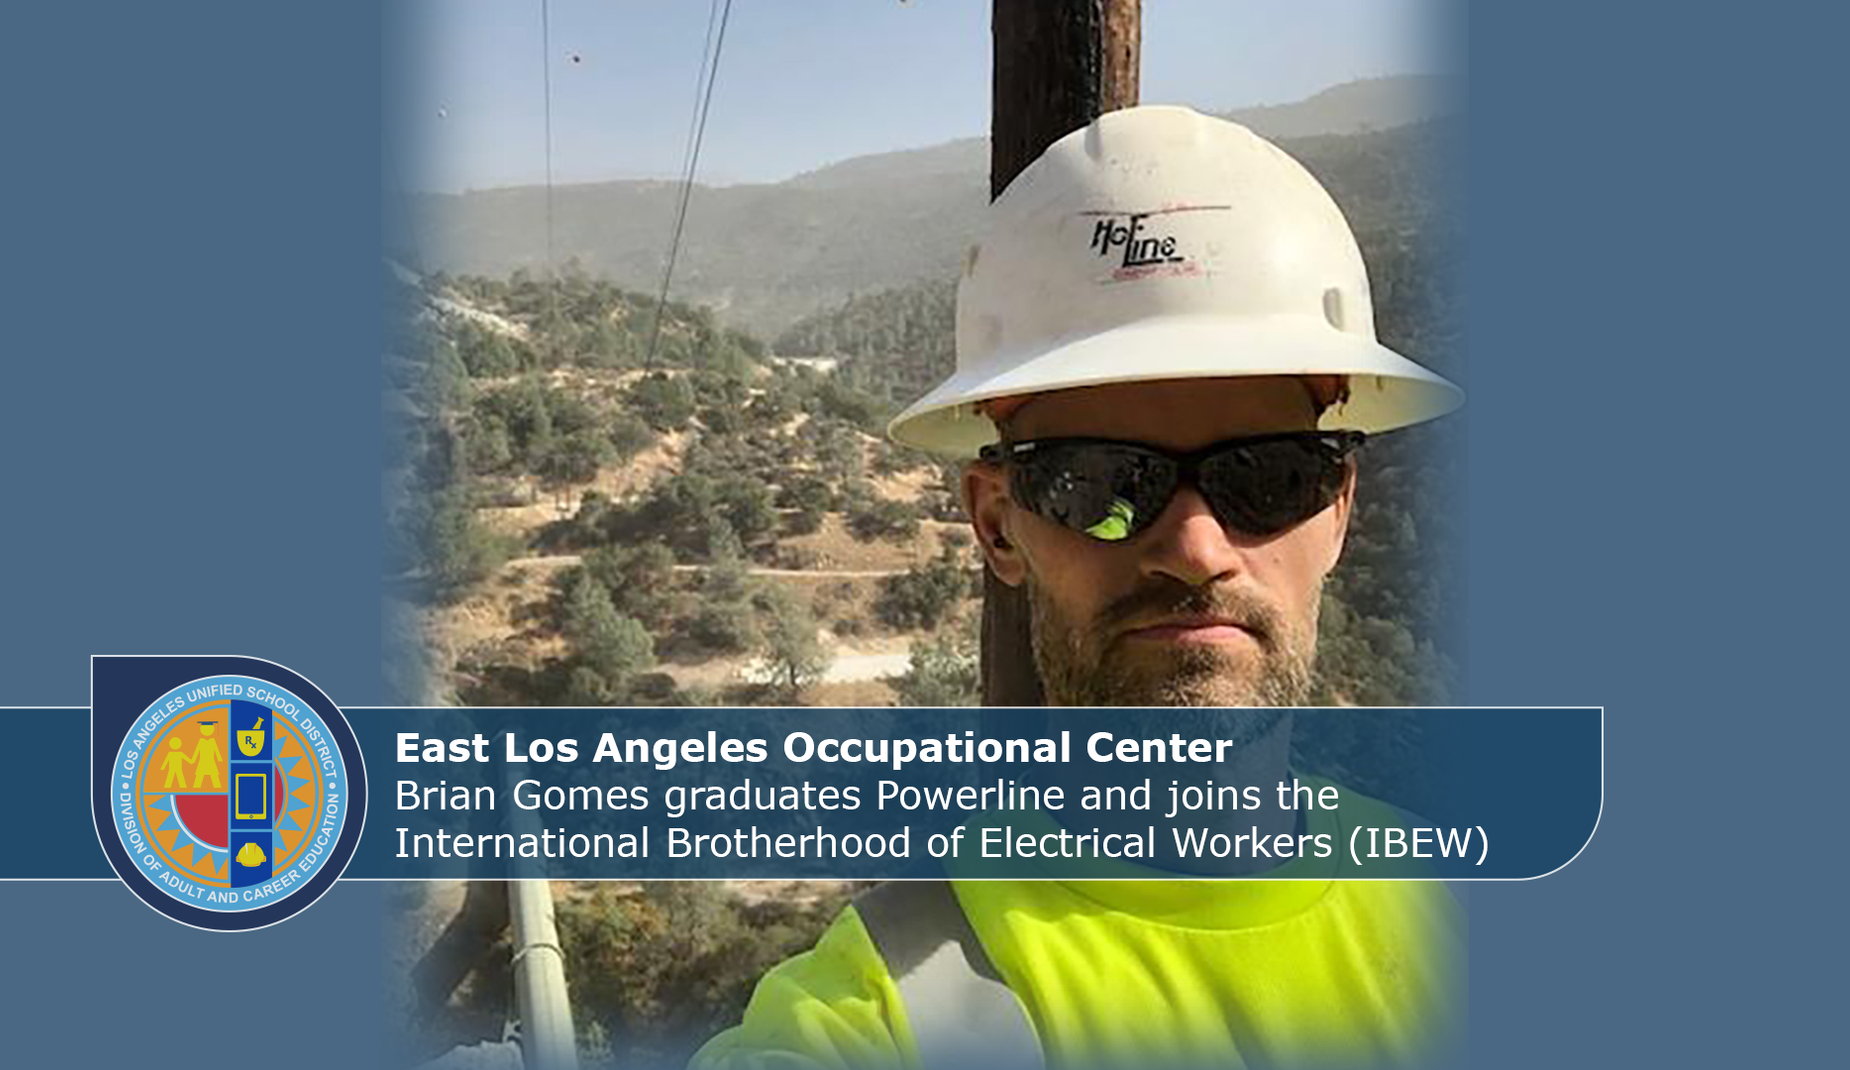 ELAOC Brian Gomes Powerline